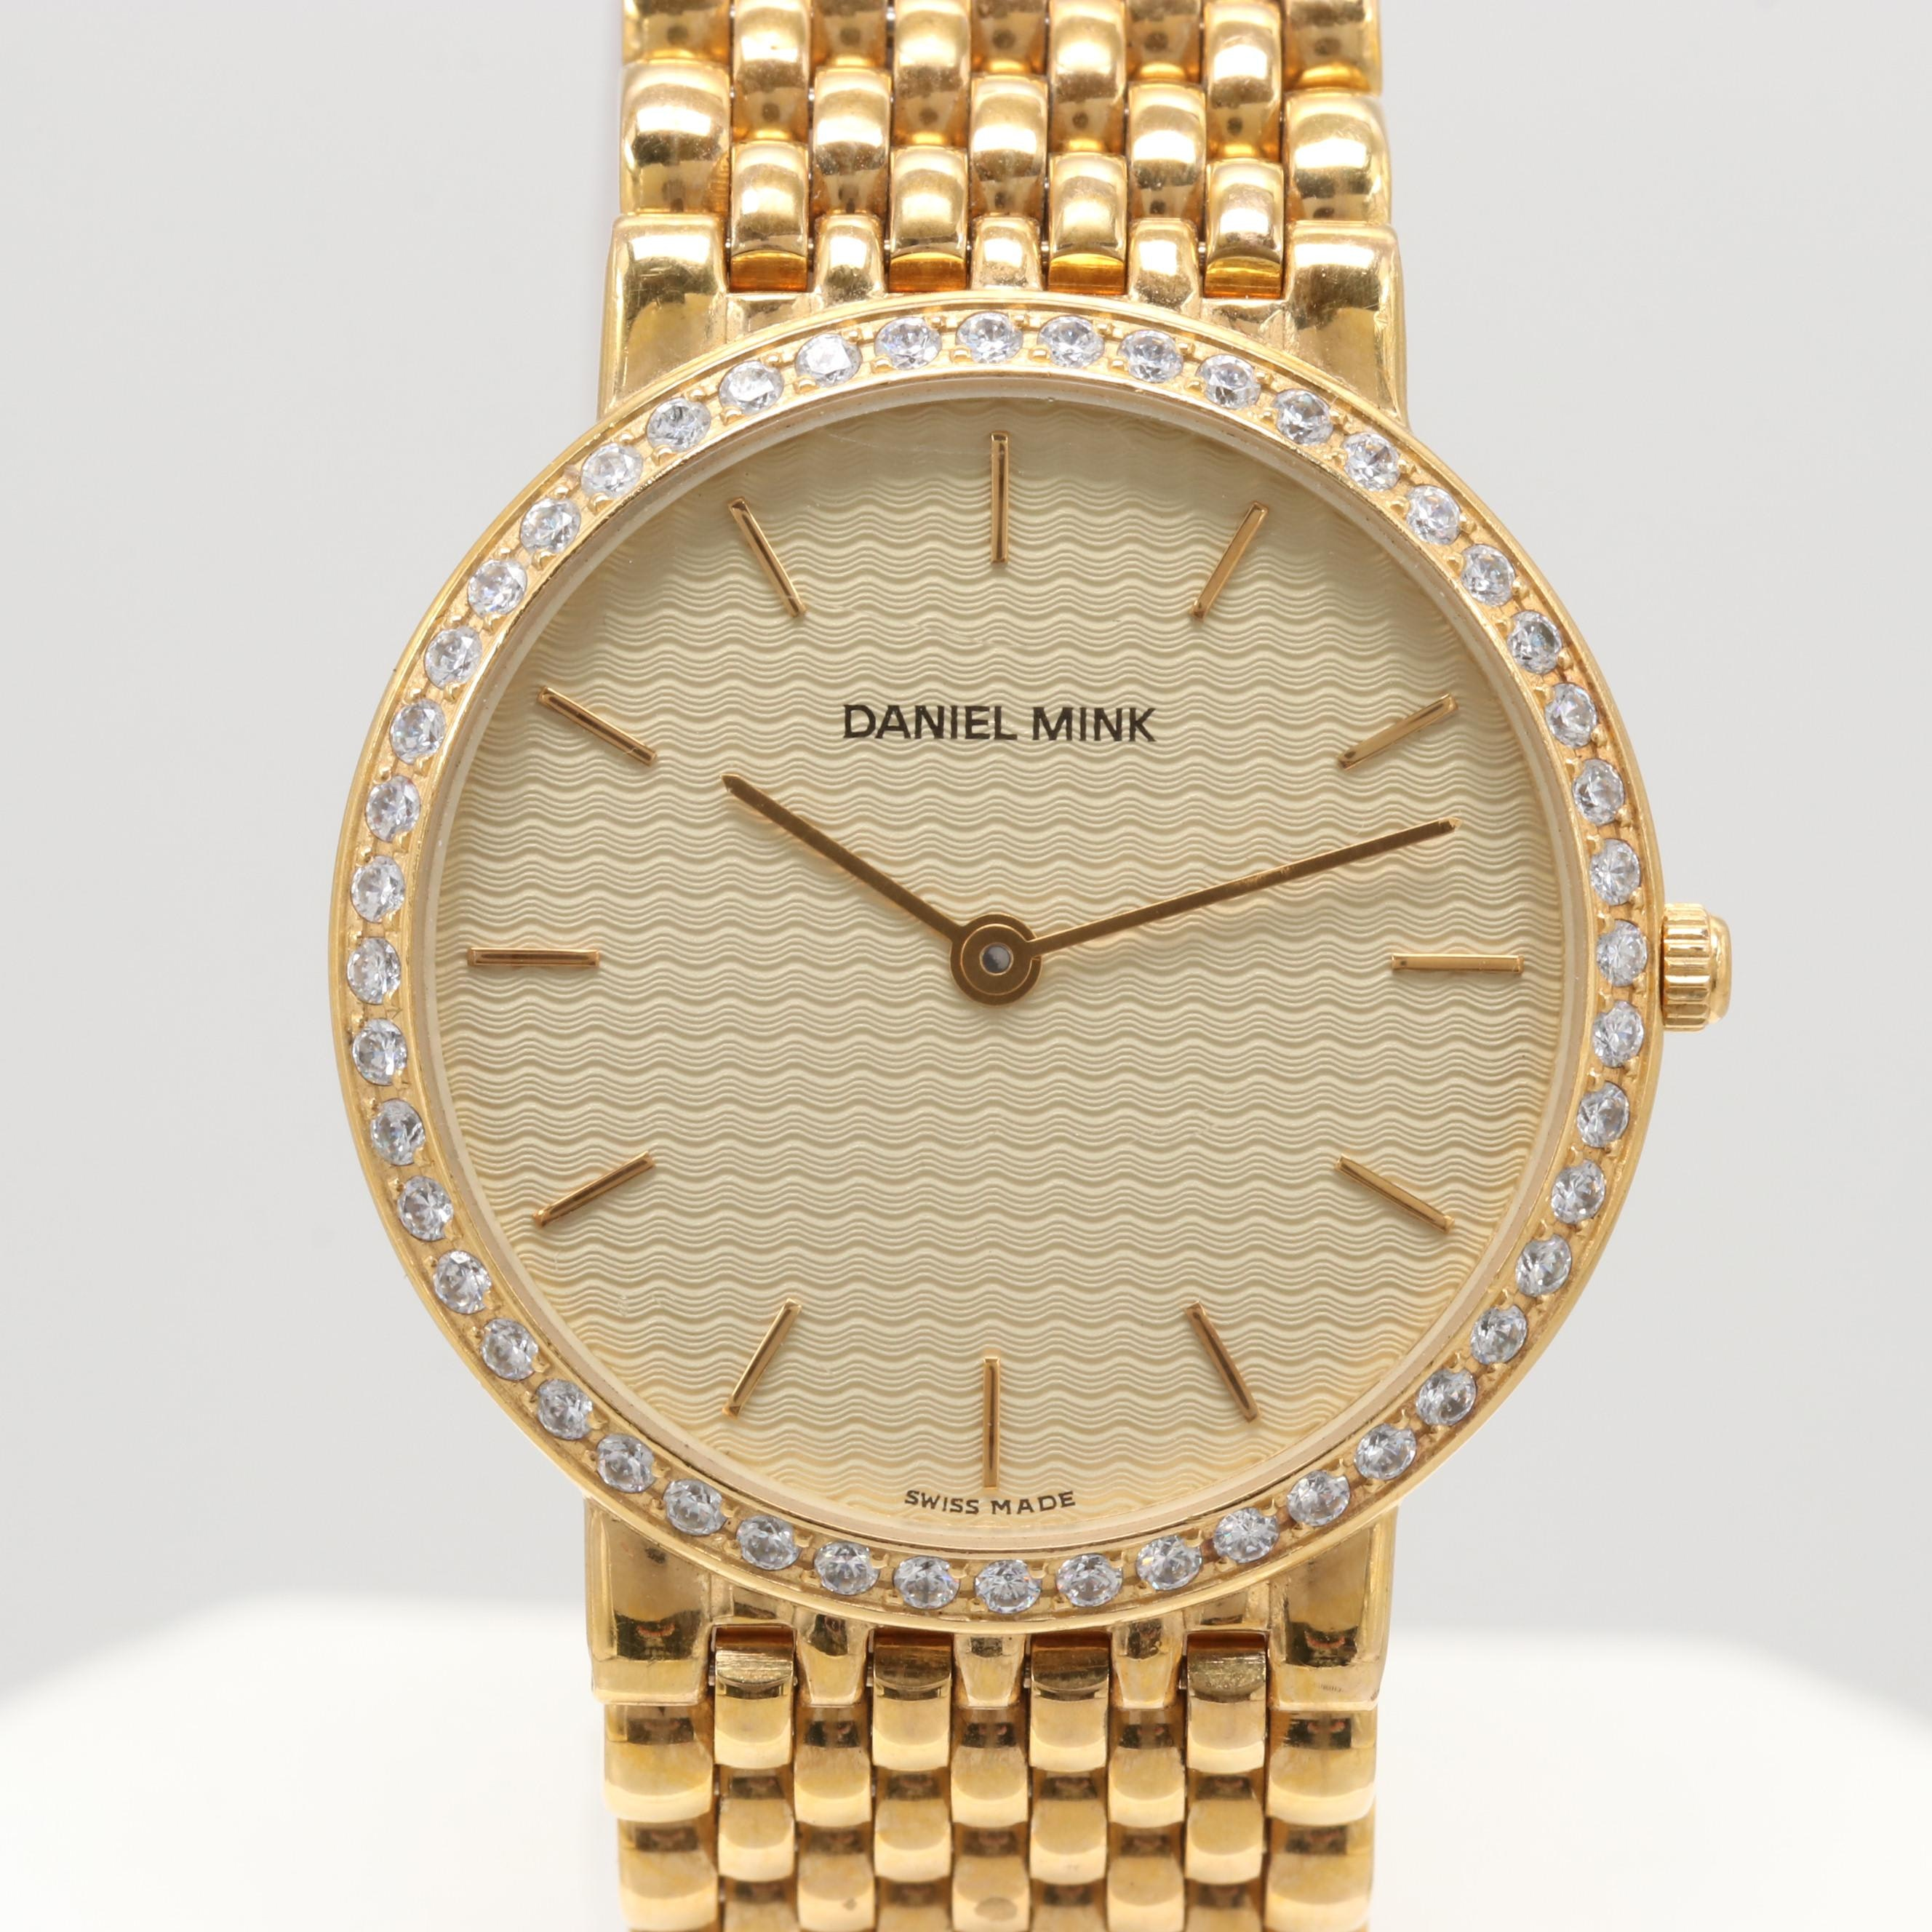 Daniel Mink 18K Gold Plated Wristwatch with Glass Crystal Accented Bezel